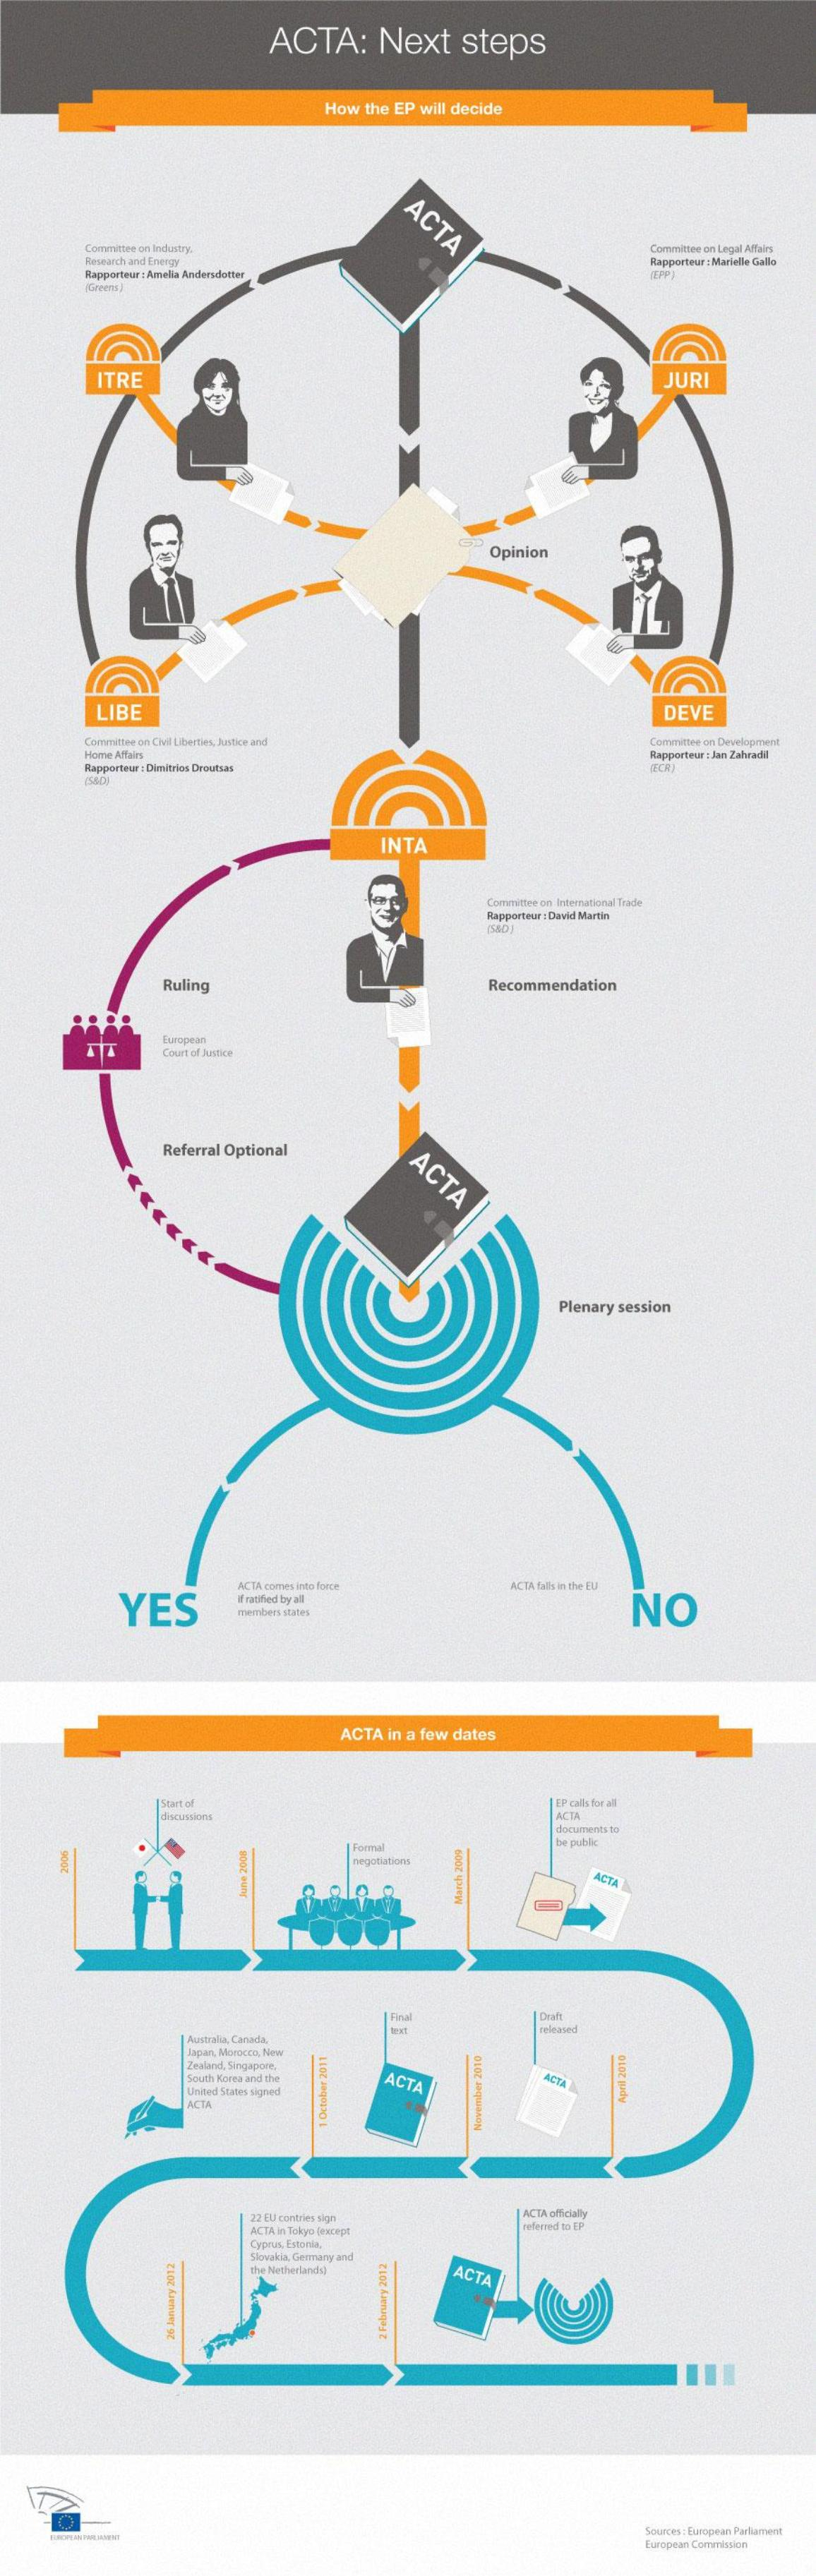 Infograph showing how the EP will come to a decision on ACTA